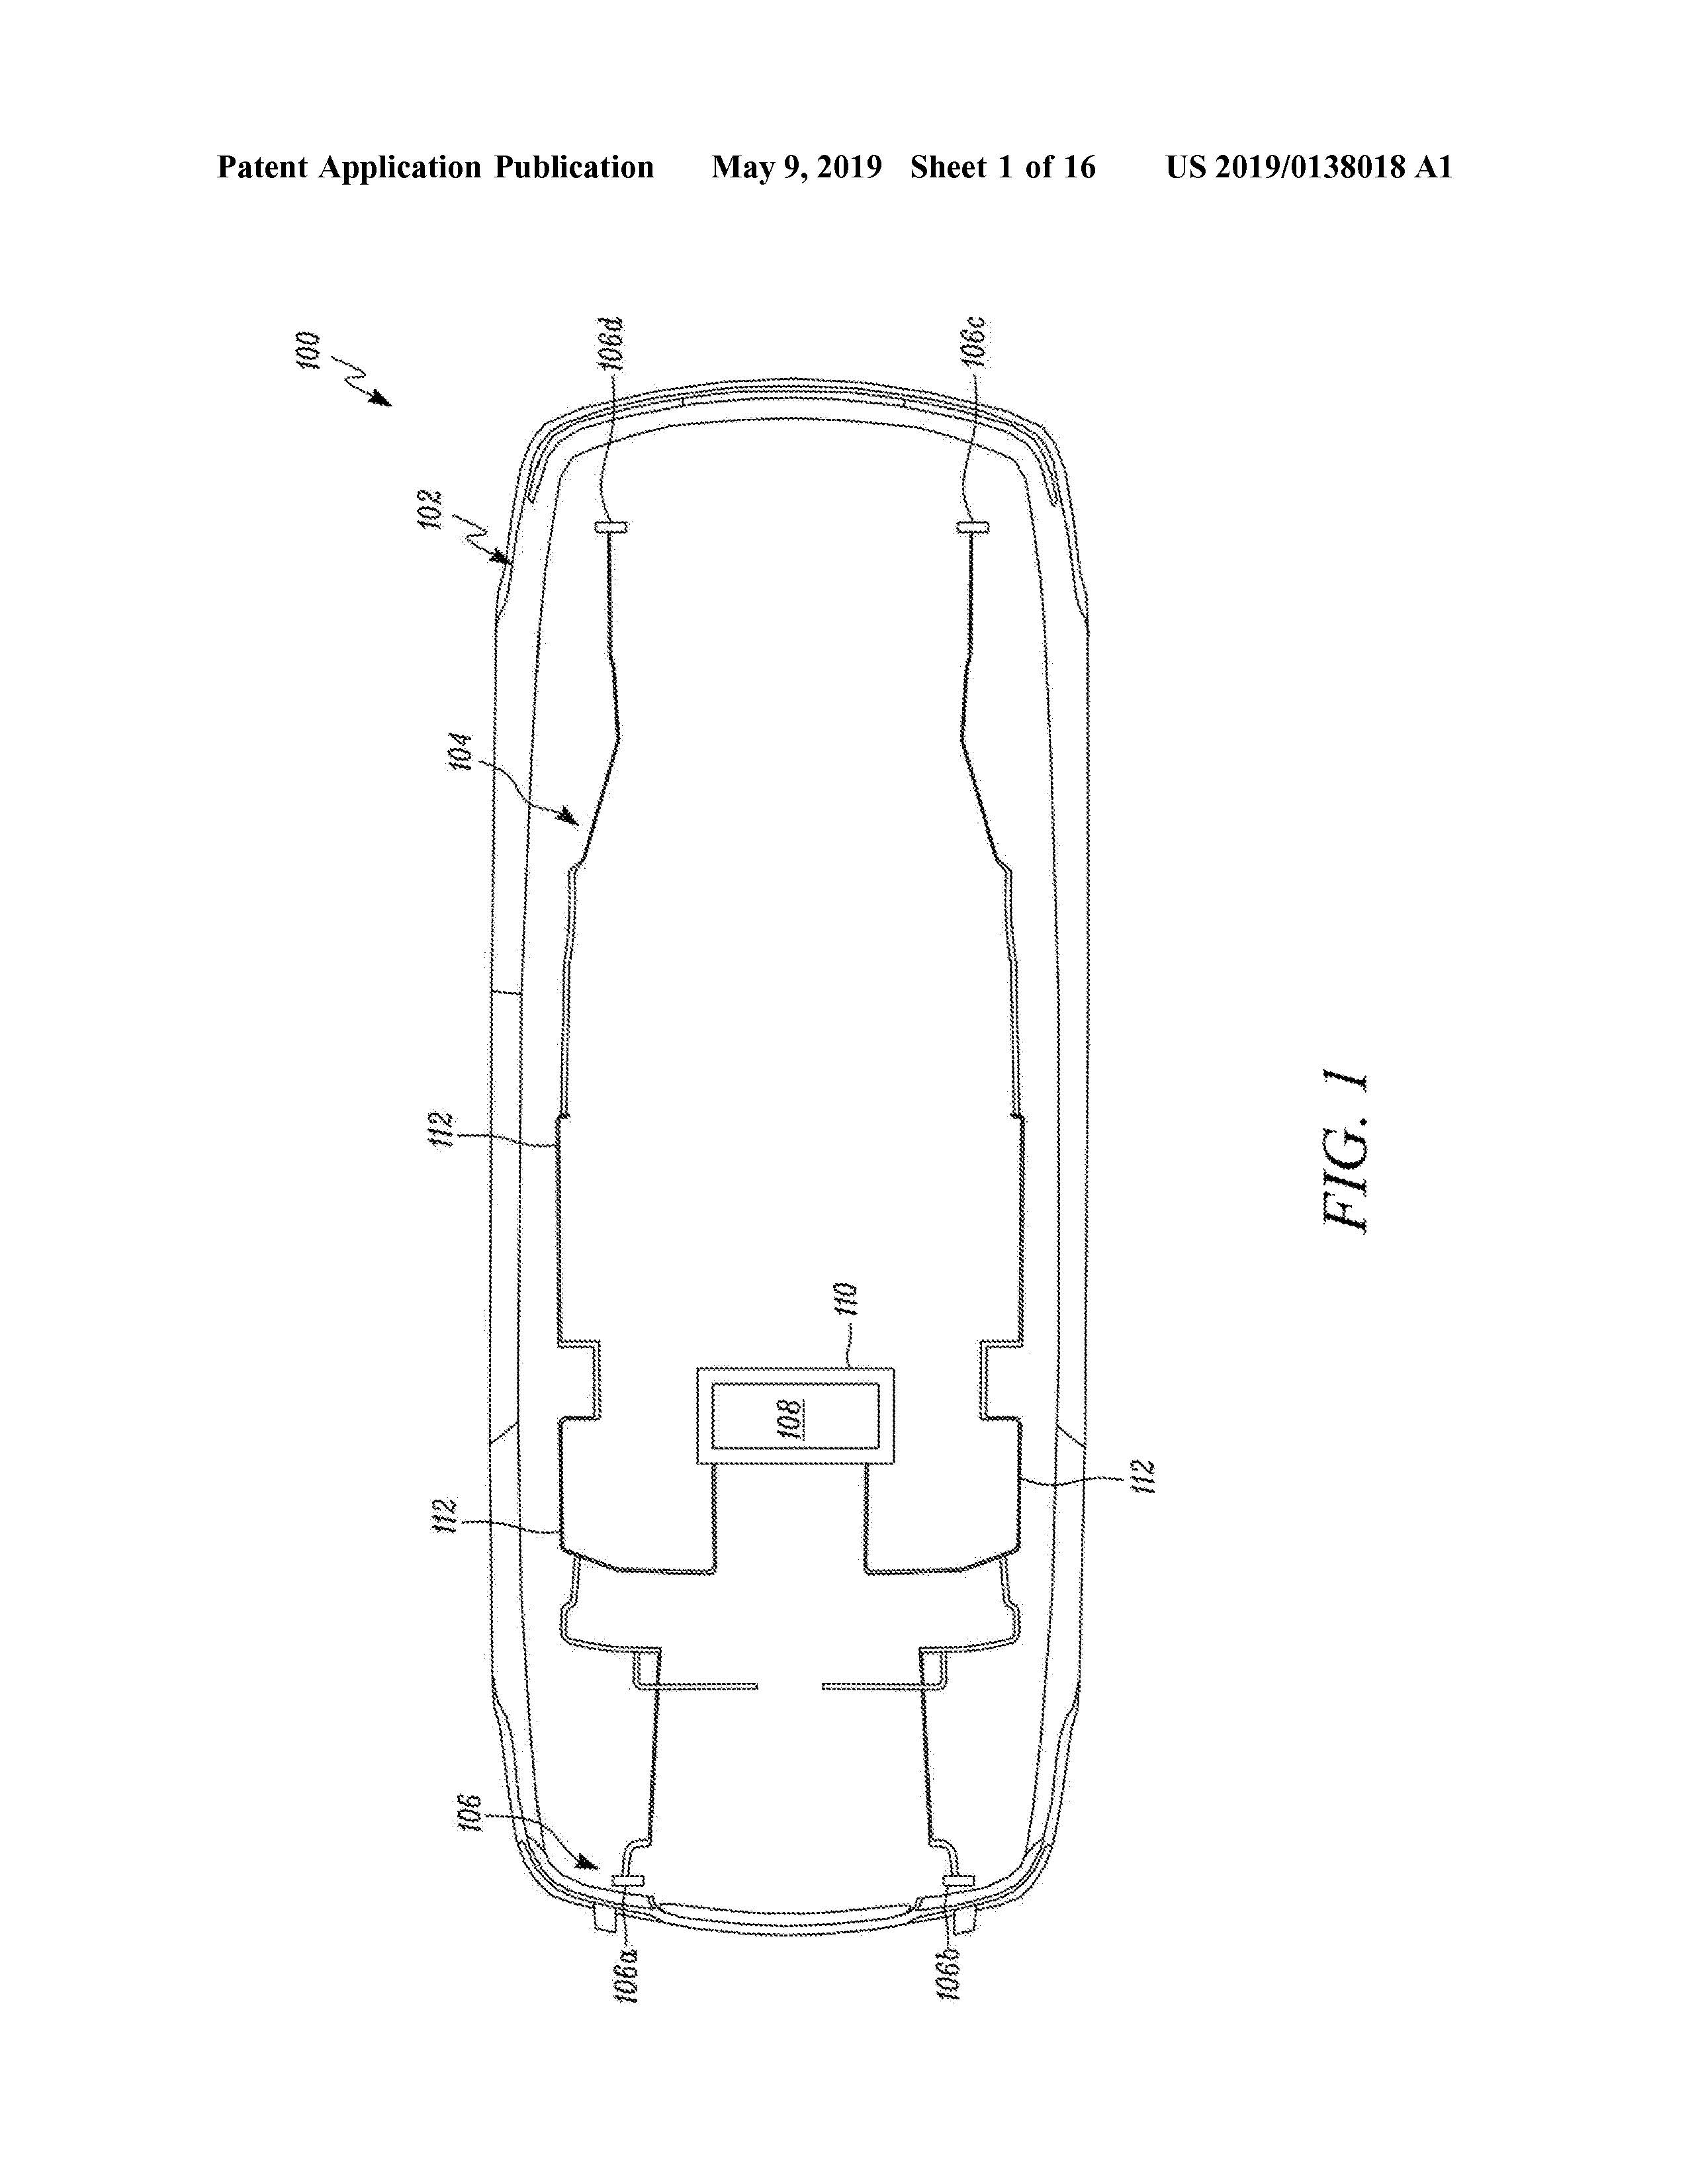 Tesla's self-driving patent application hints at faster collision